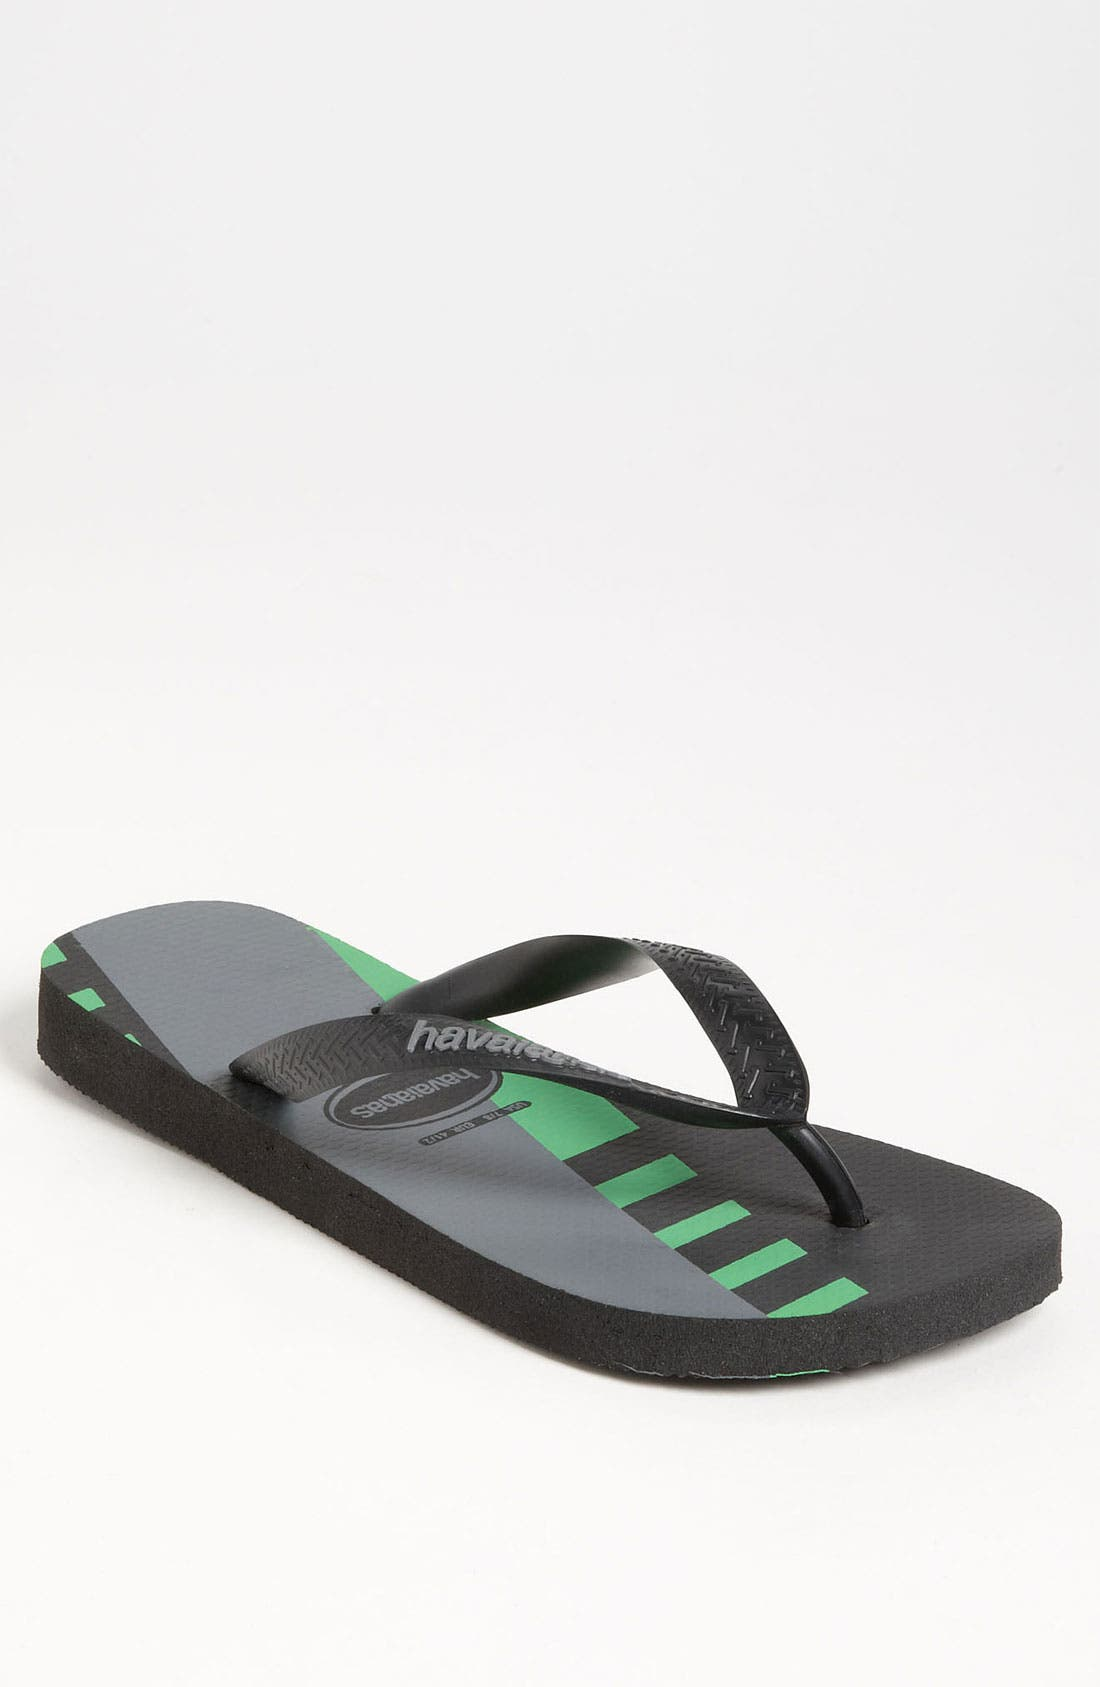 Alternate Image 1 Selected - Havaianas TREND Mens Flip Flop